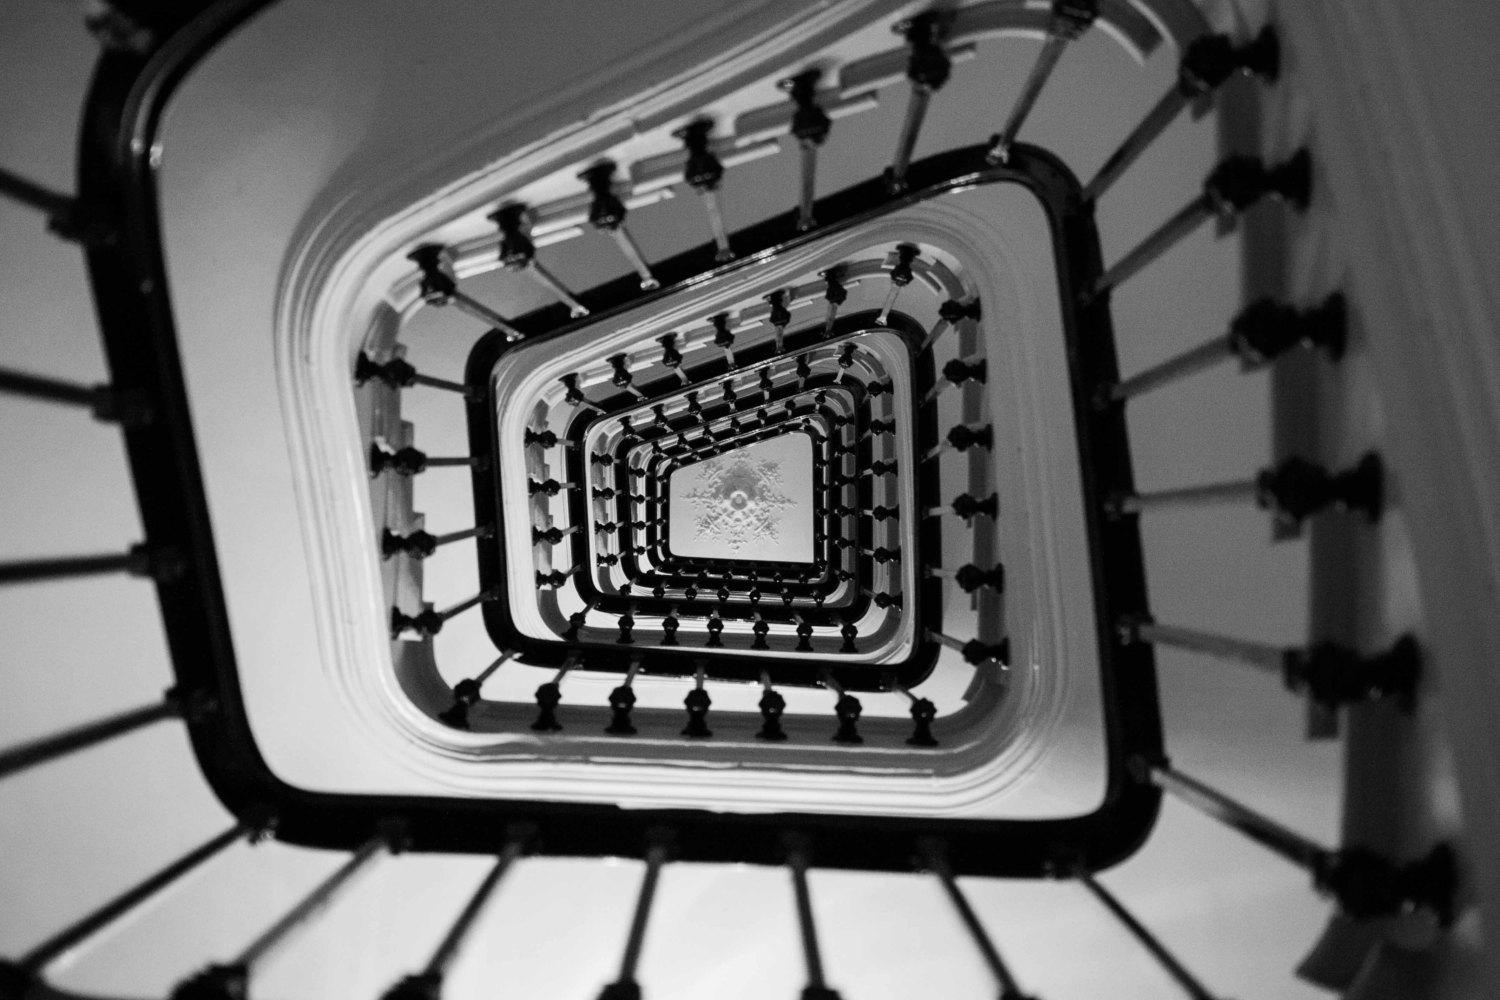 Paris Photography Paris Apartment Stairs Black And White Regarding Black And White Paris Wall Art (Image 11 of 20)